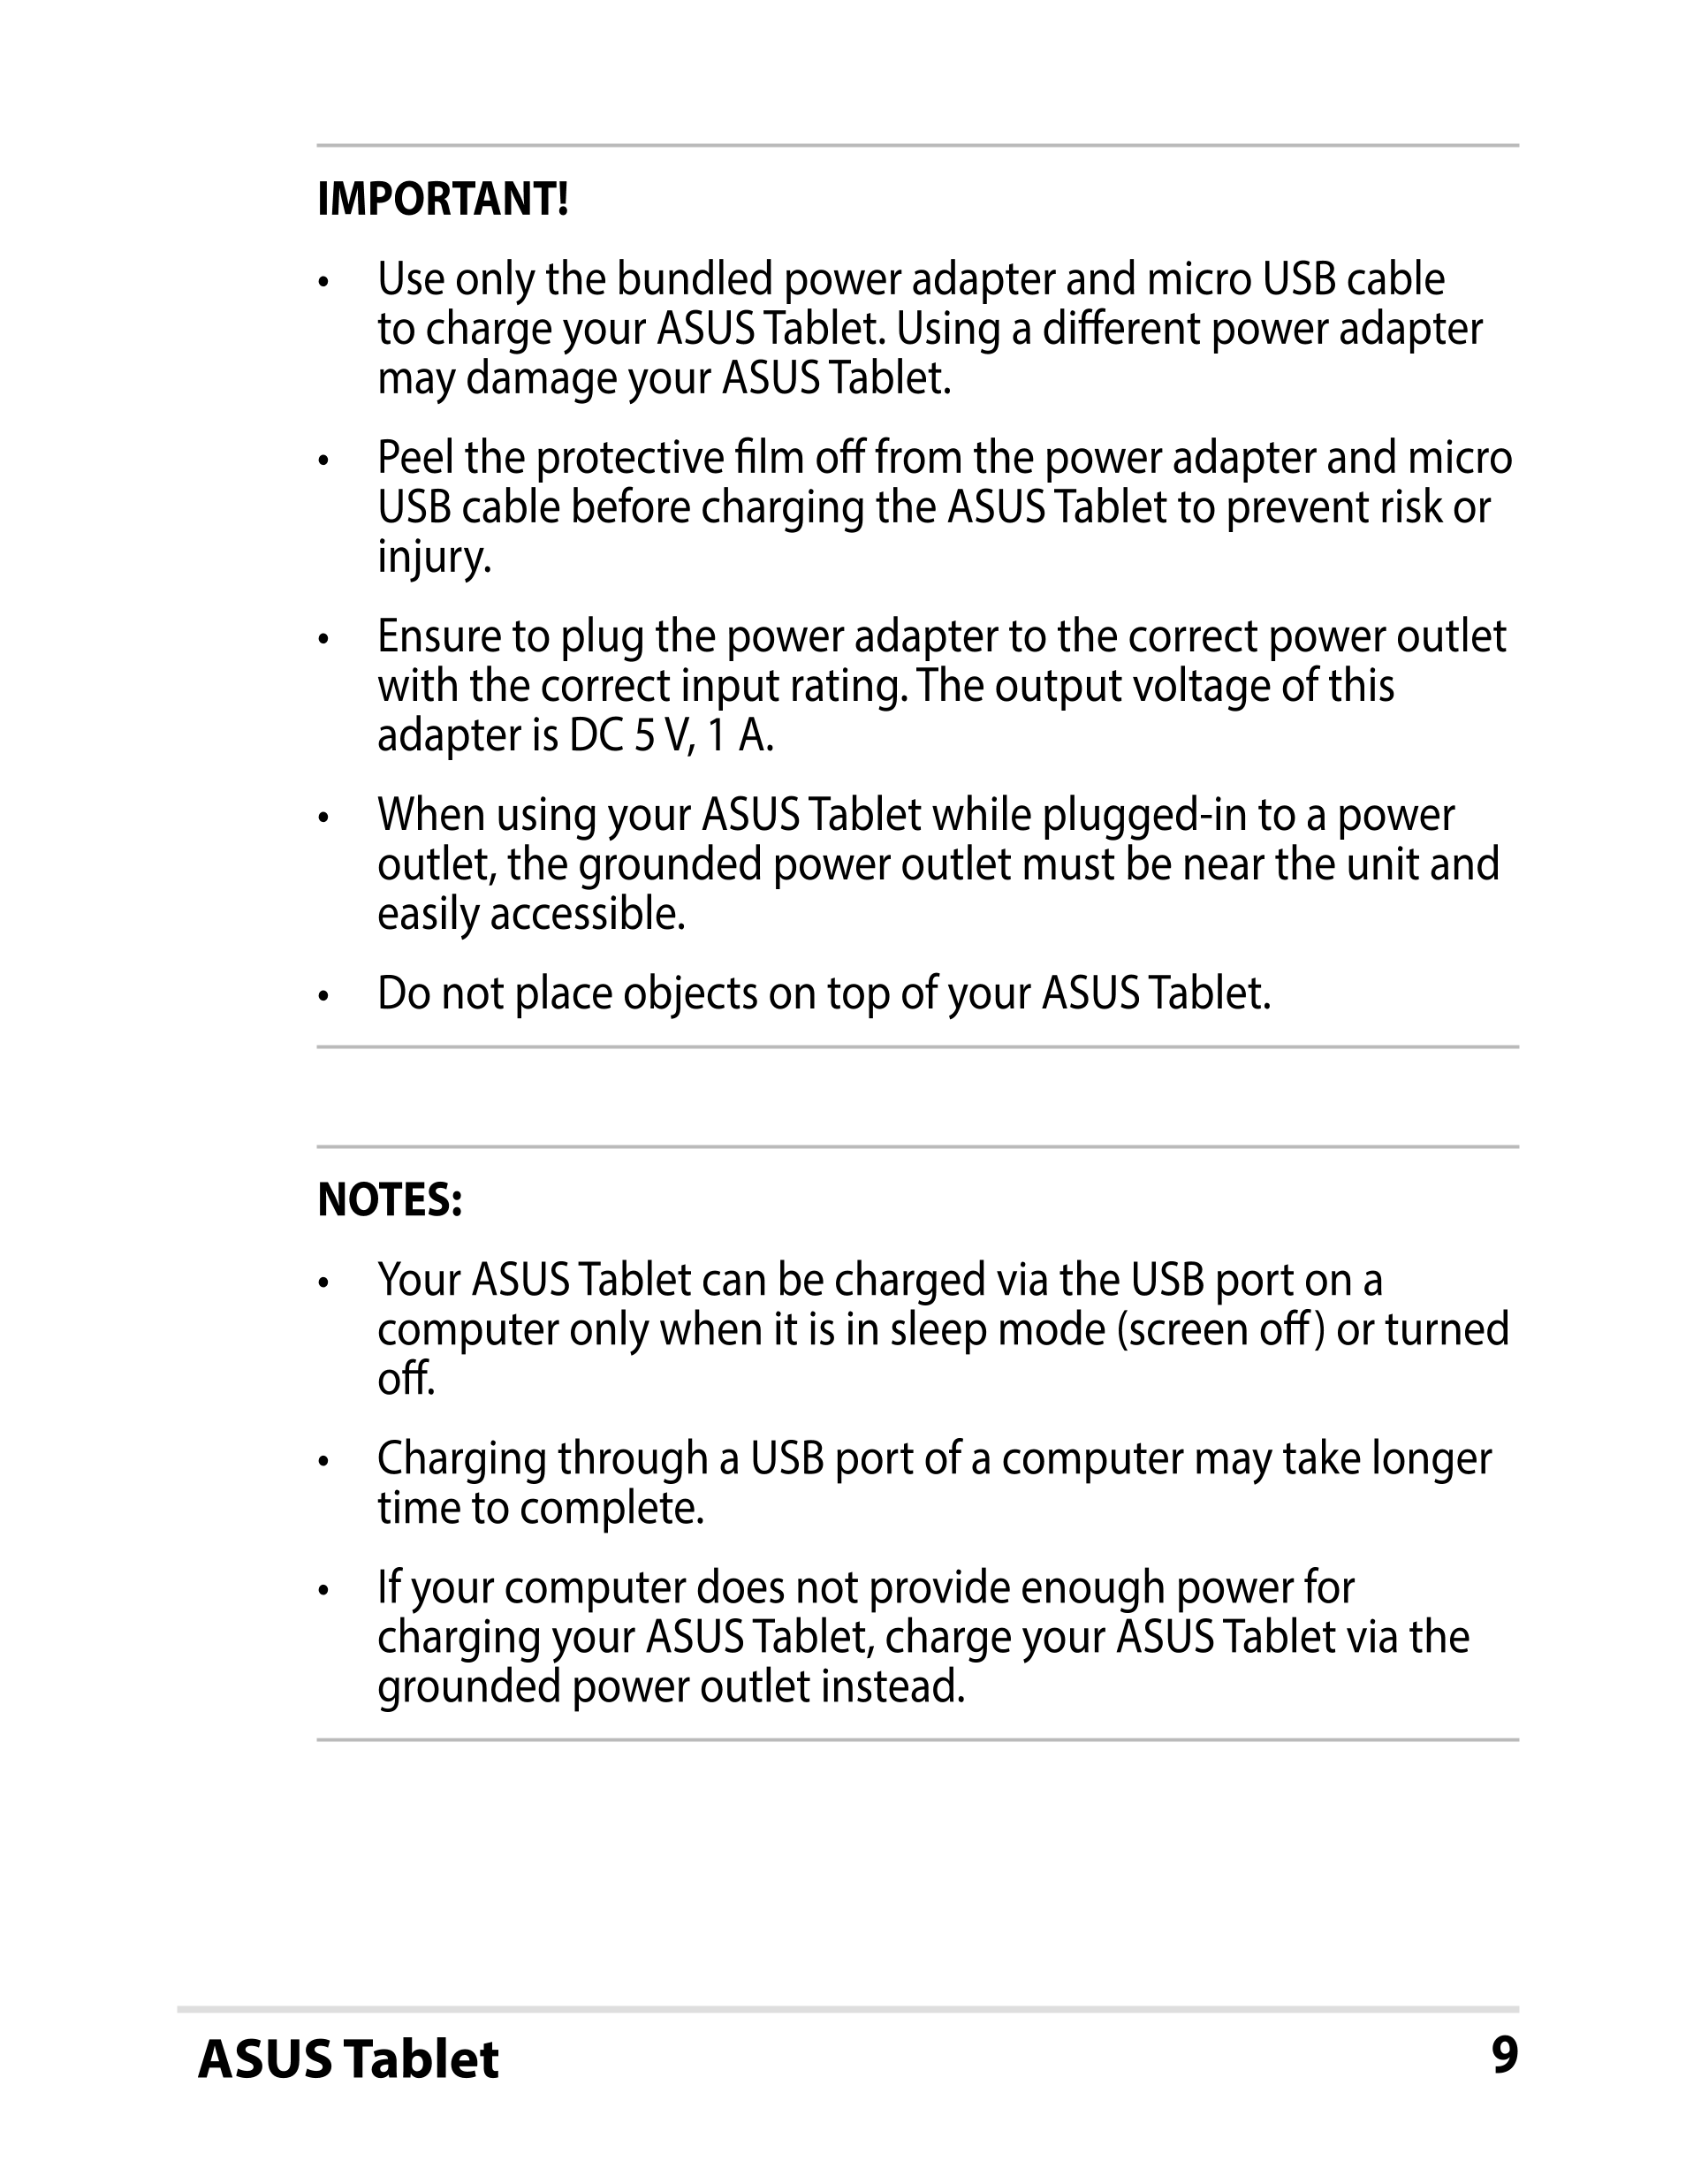 Manual Asus Fonepad 7 Android 43 Smart Guides Usb Cable Wiring Diagram User For Important Use Only The Bundled Power Adapter And Micro To Charge Your